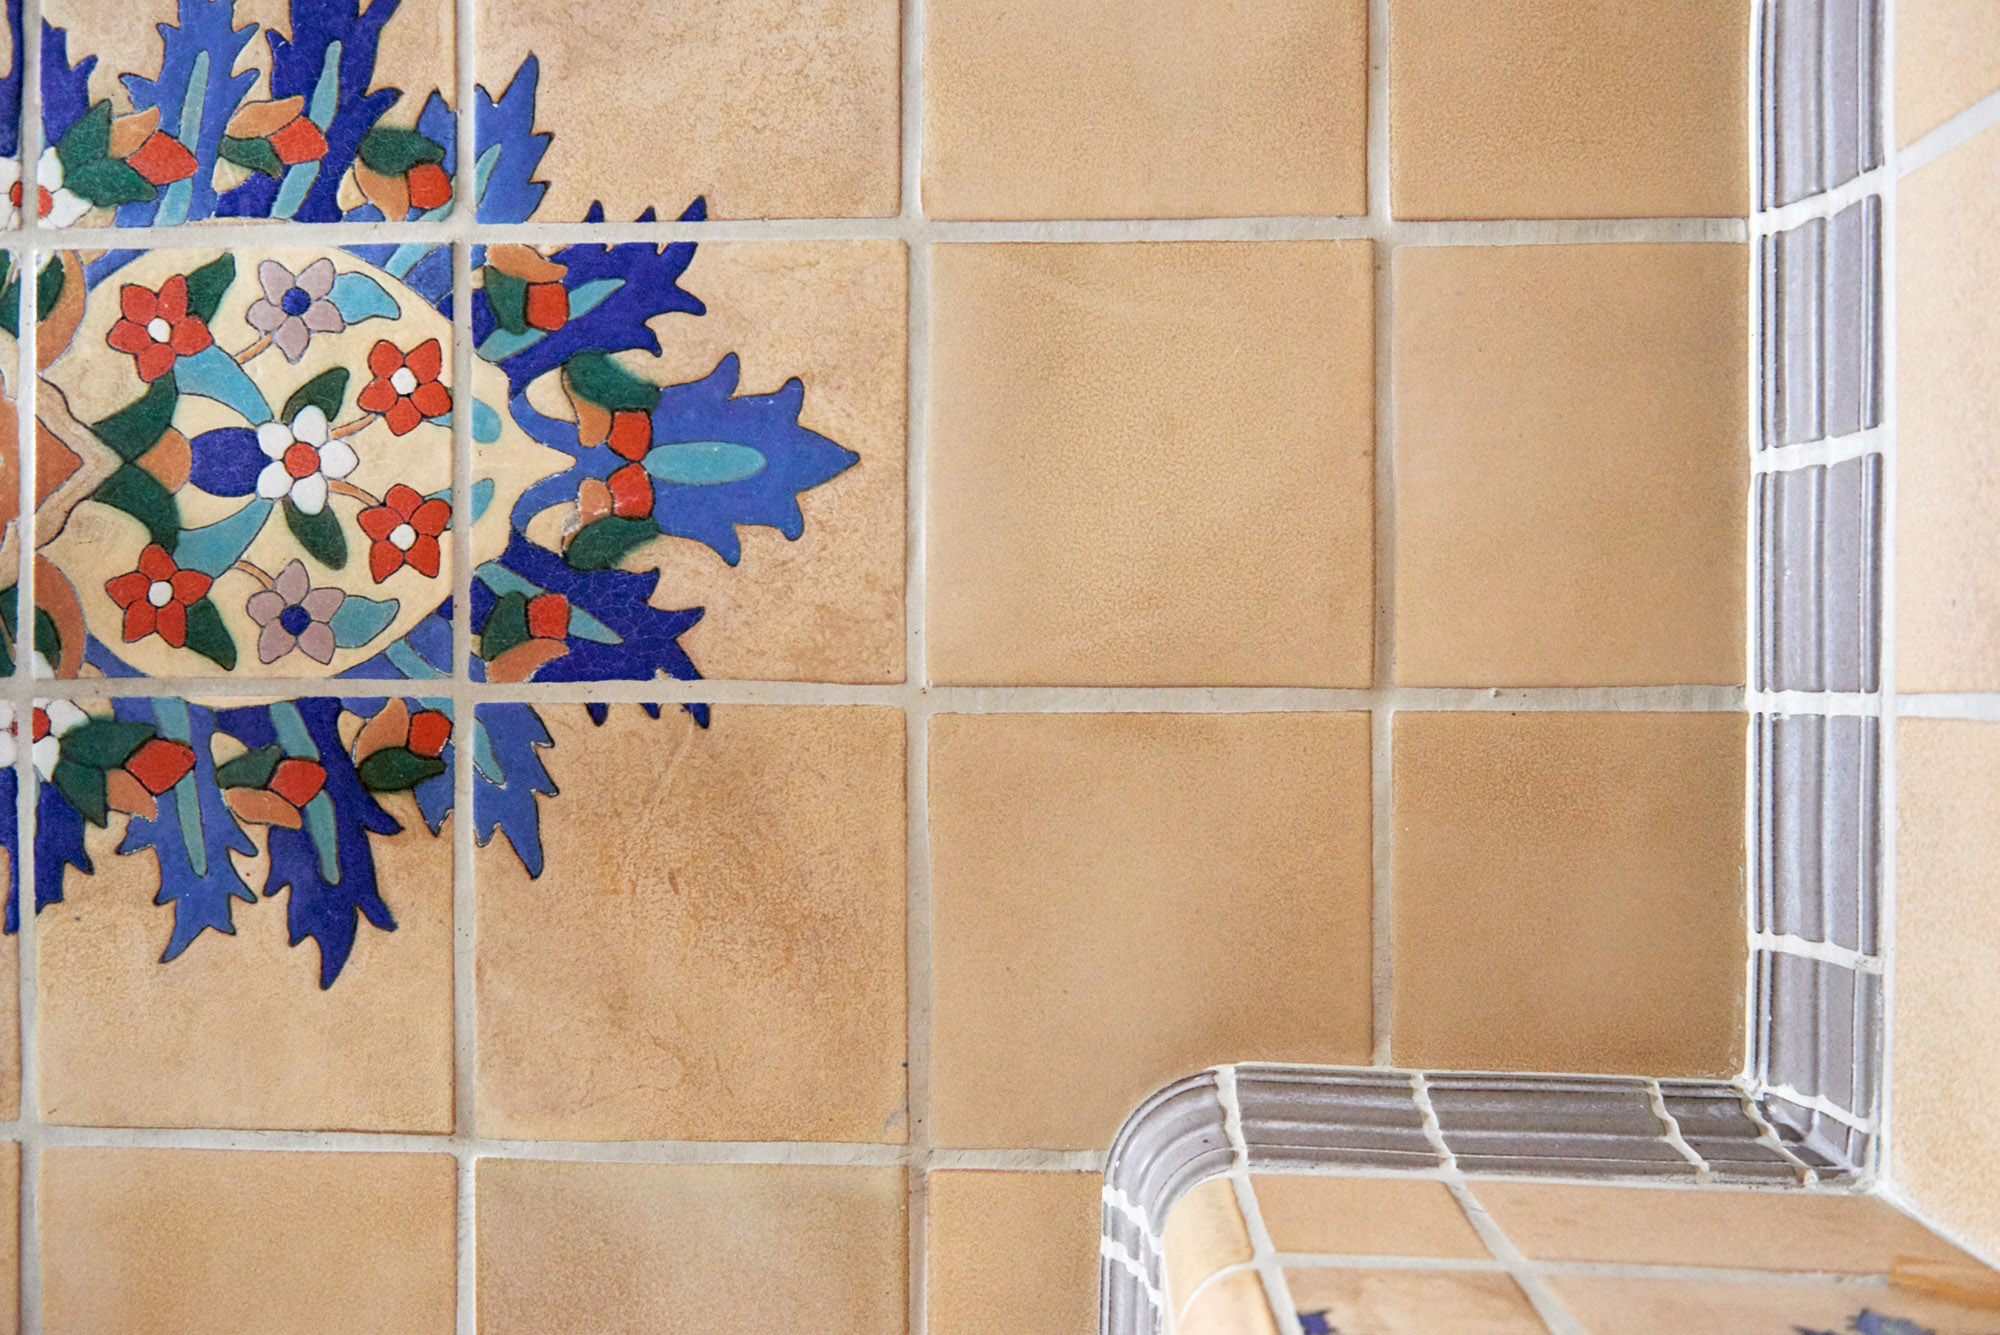 Sample of original Malibu Tile located in the Tower at the Pier.